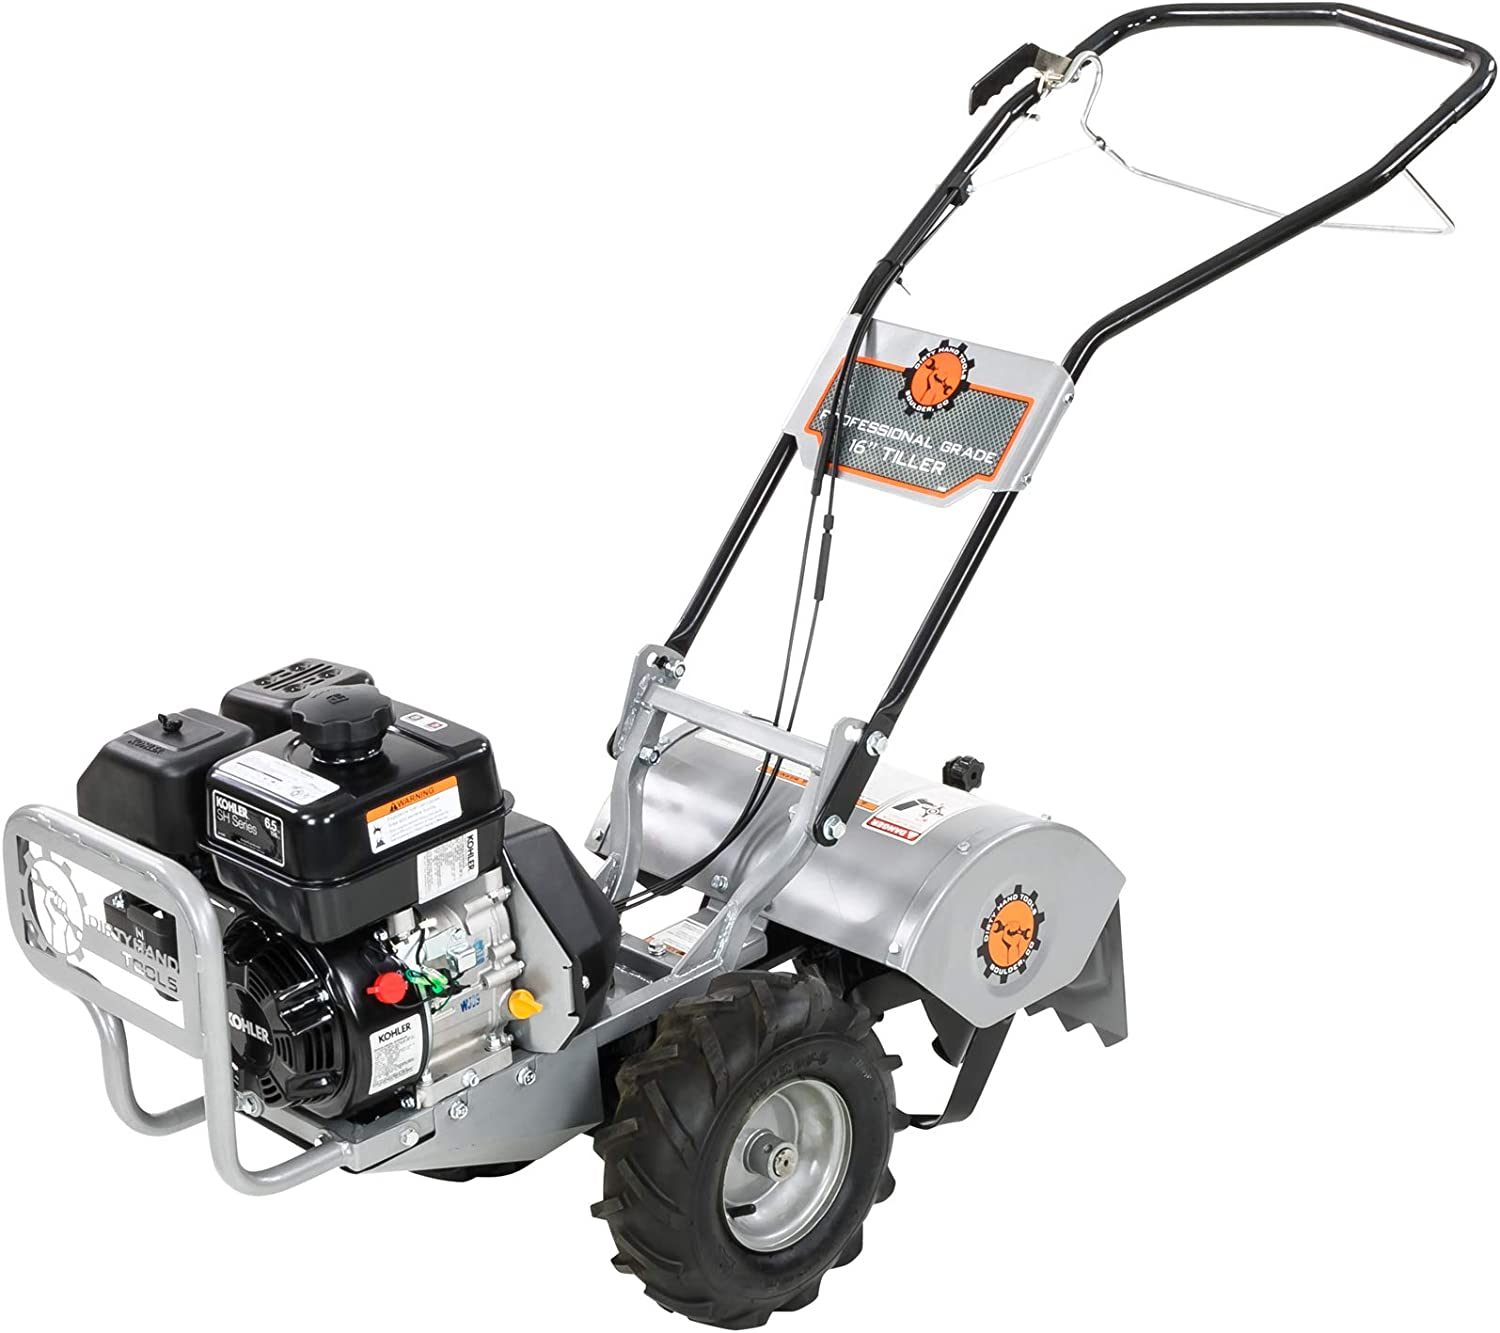 Earthwise TC70016 16-Inch 13.5 Amp Corded Electric Tiller Cultivator, Grey Renewed